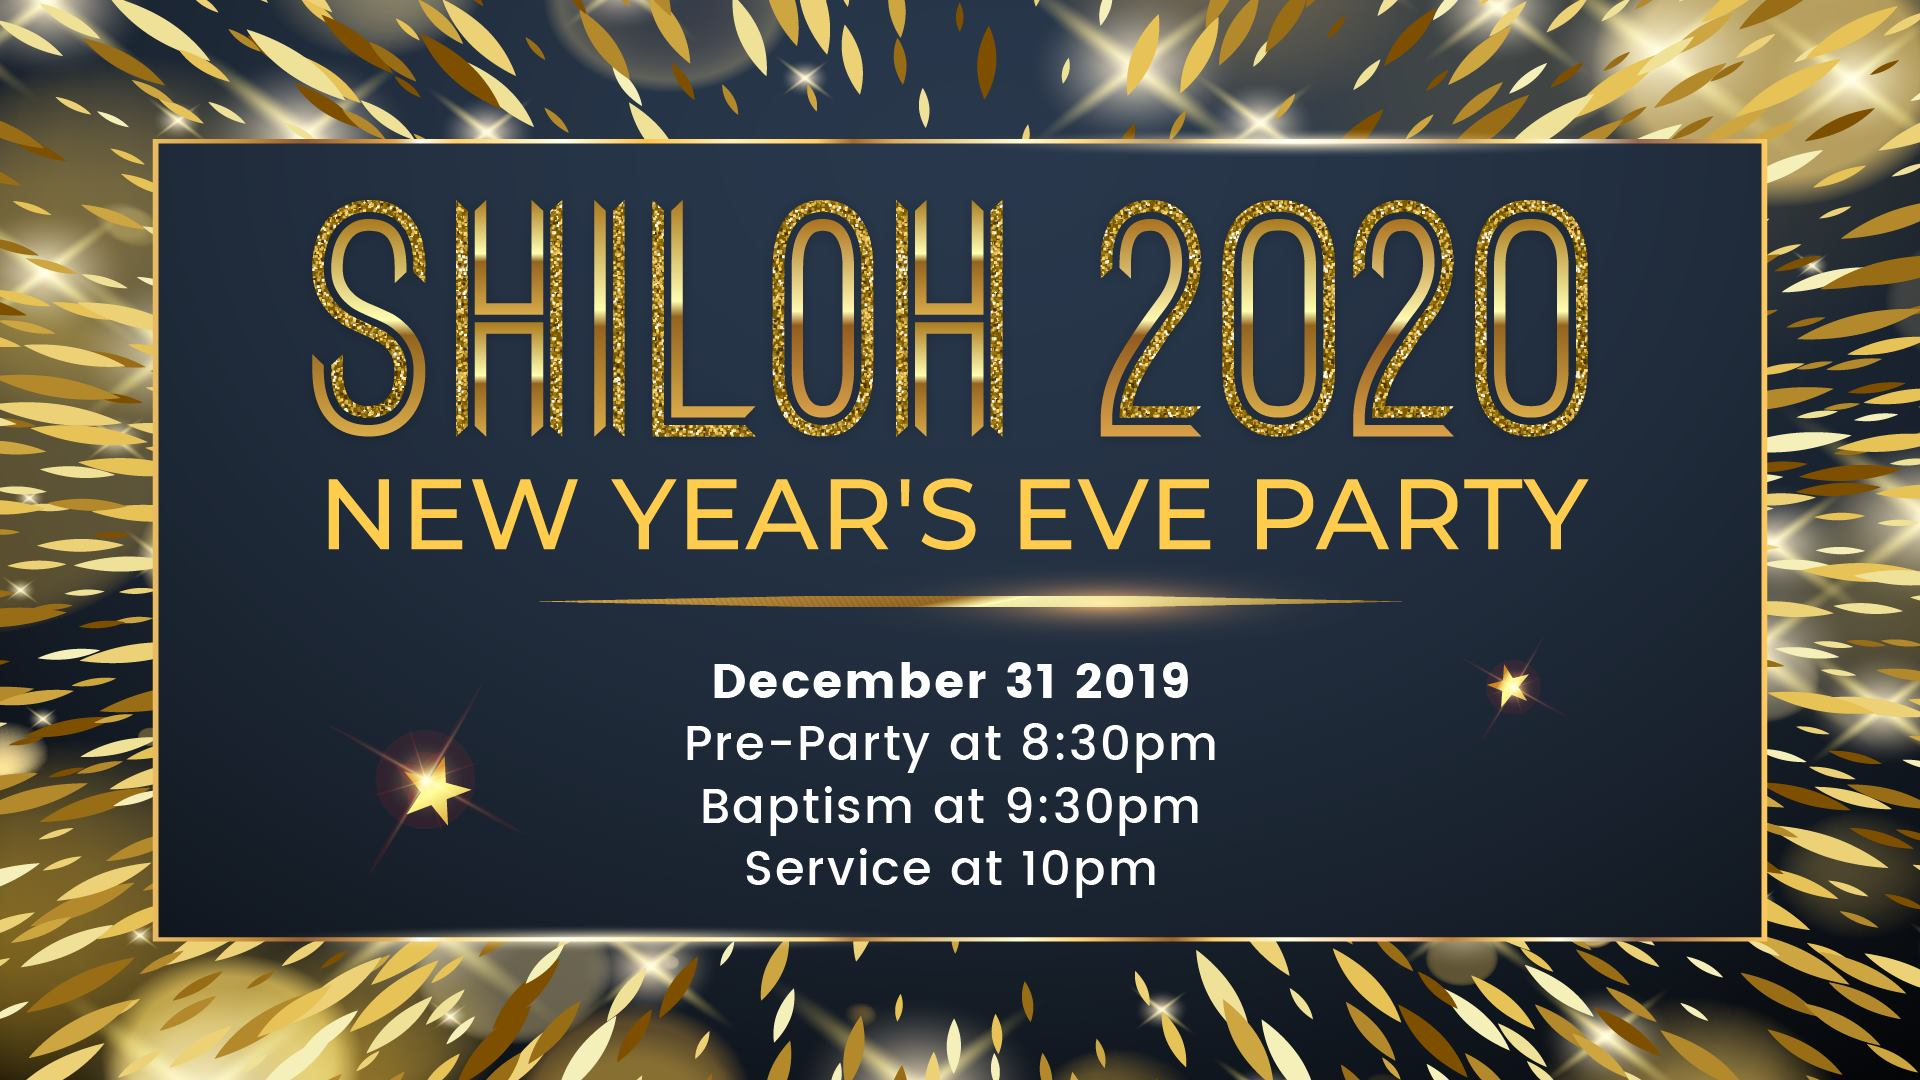 Shiloh Oakland New Years Eve